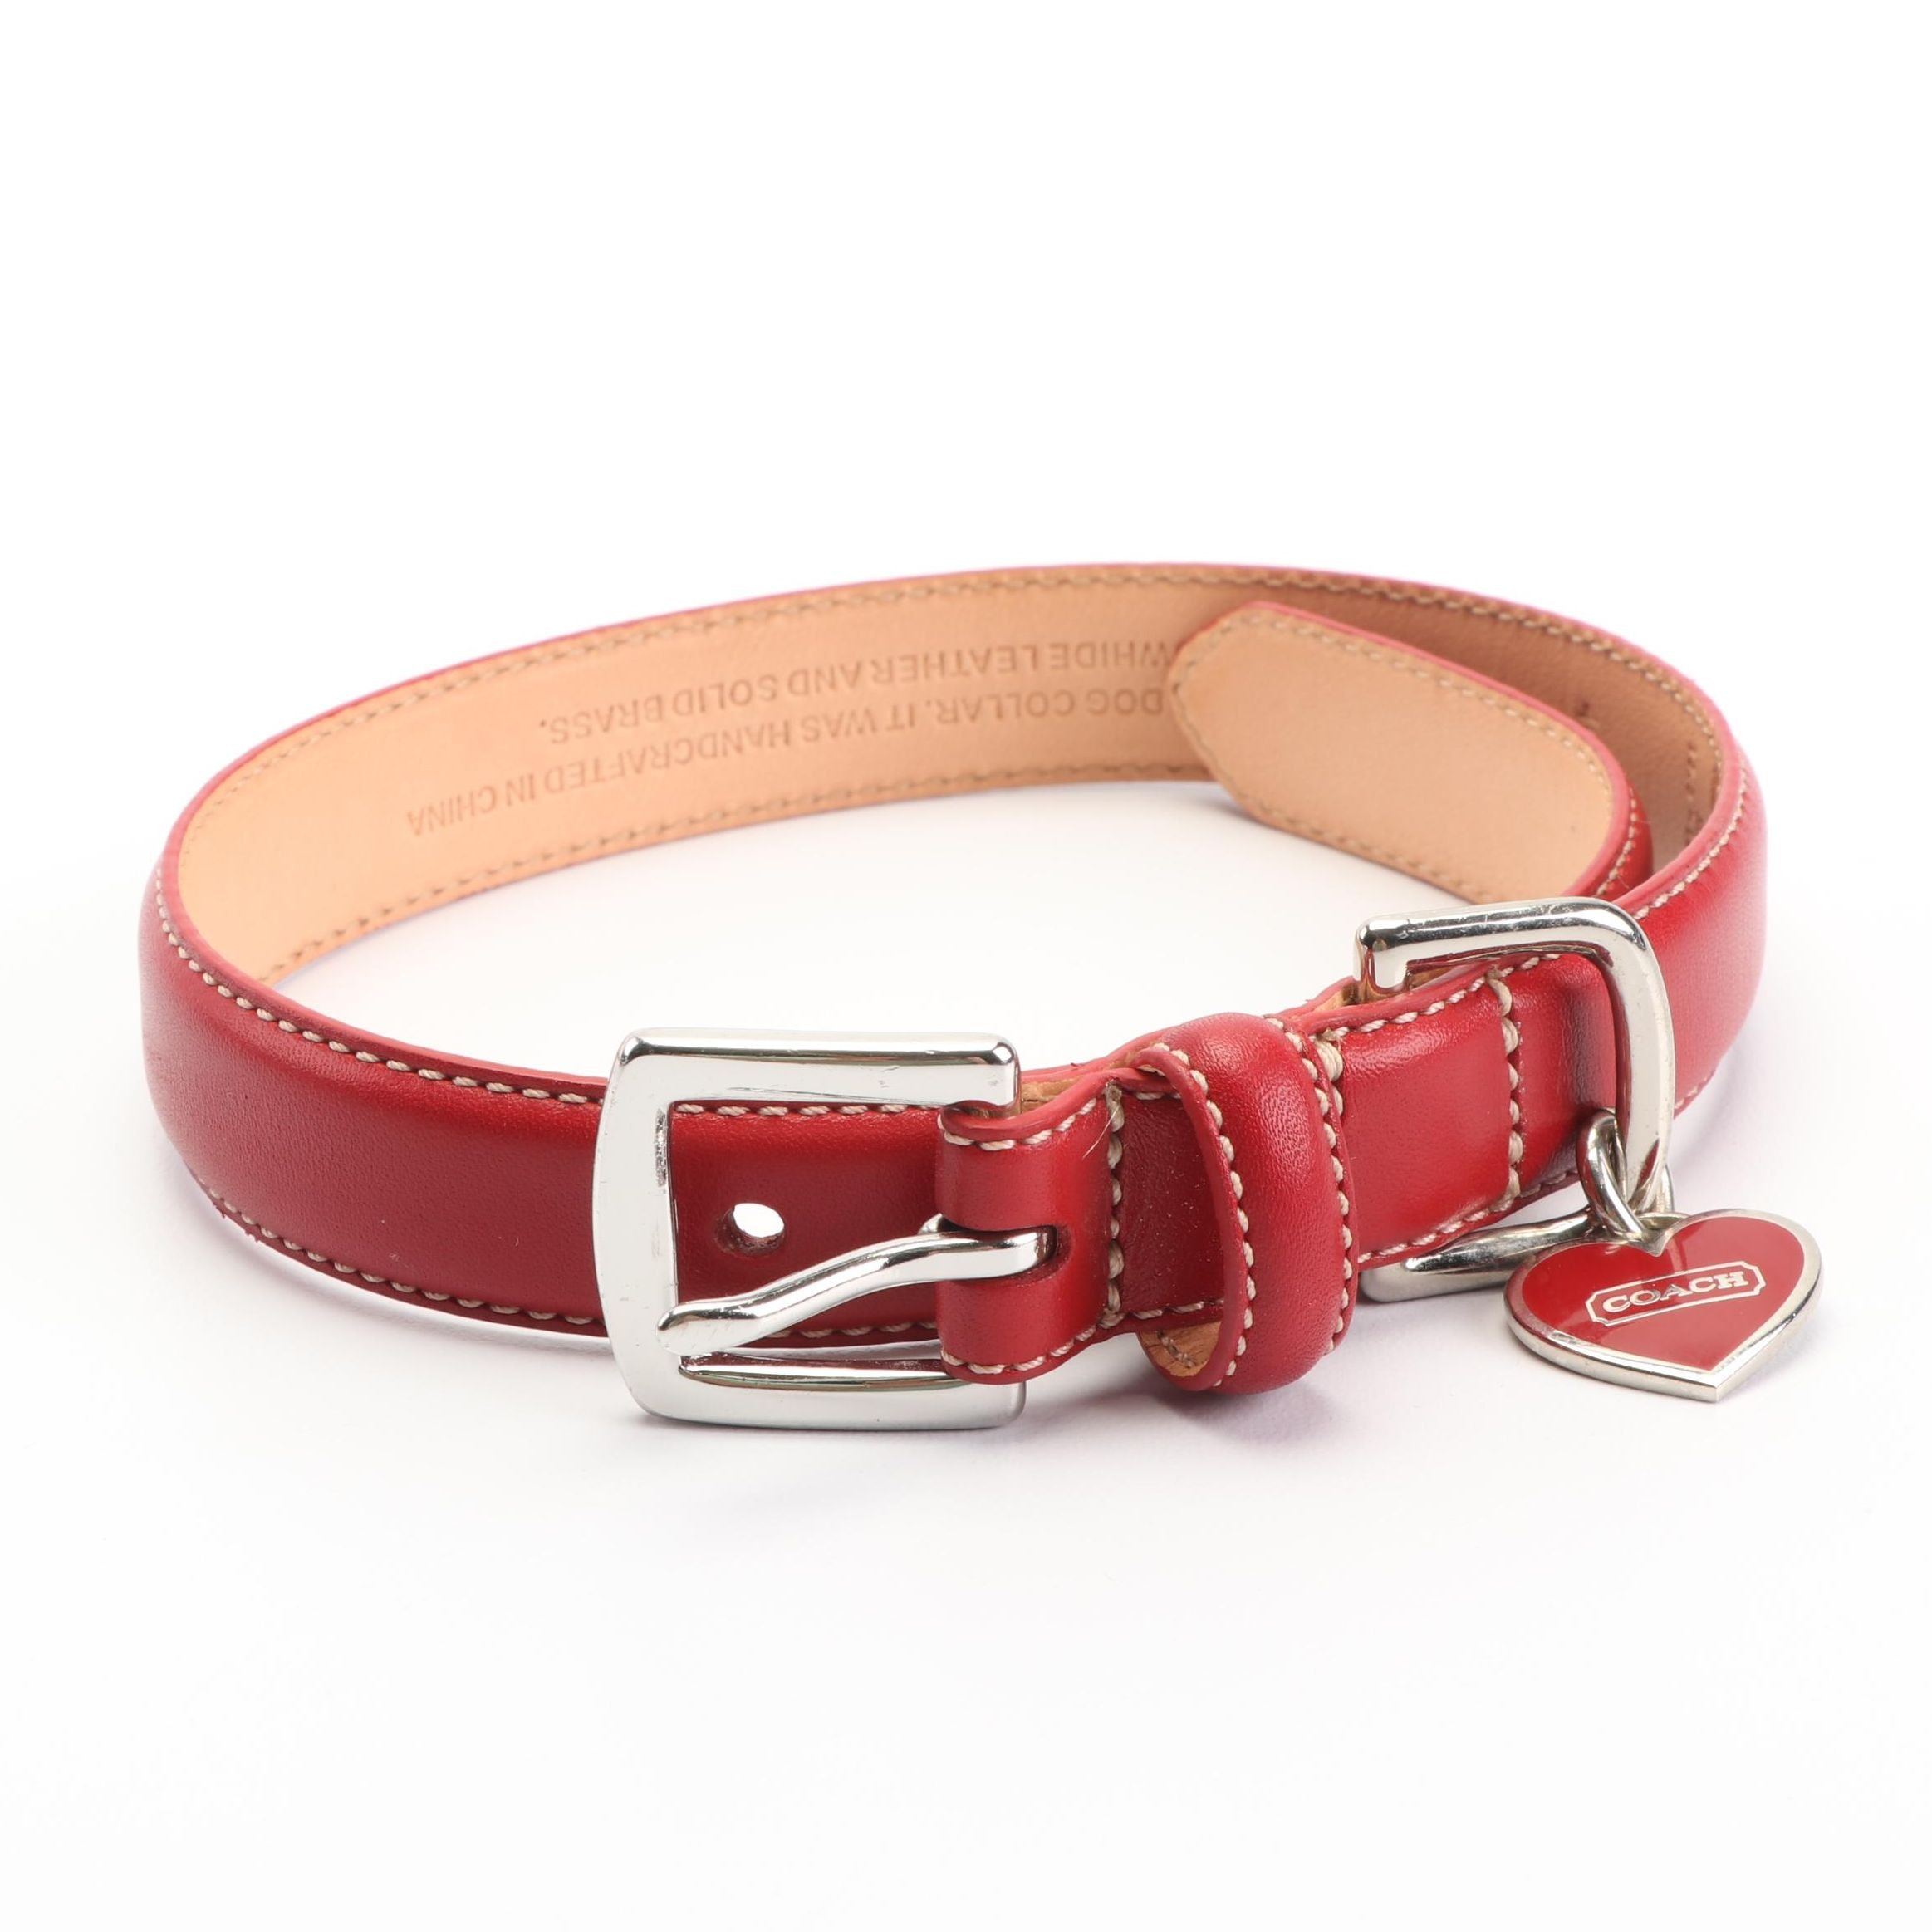 Coach Red Leather Dog Collar